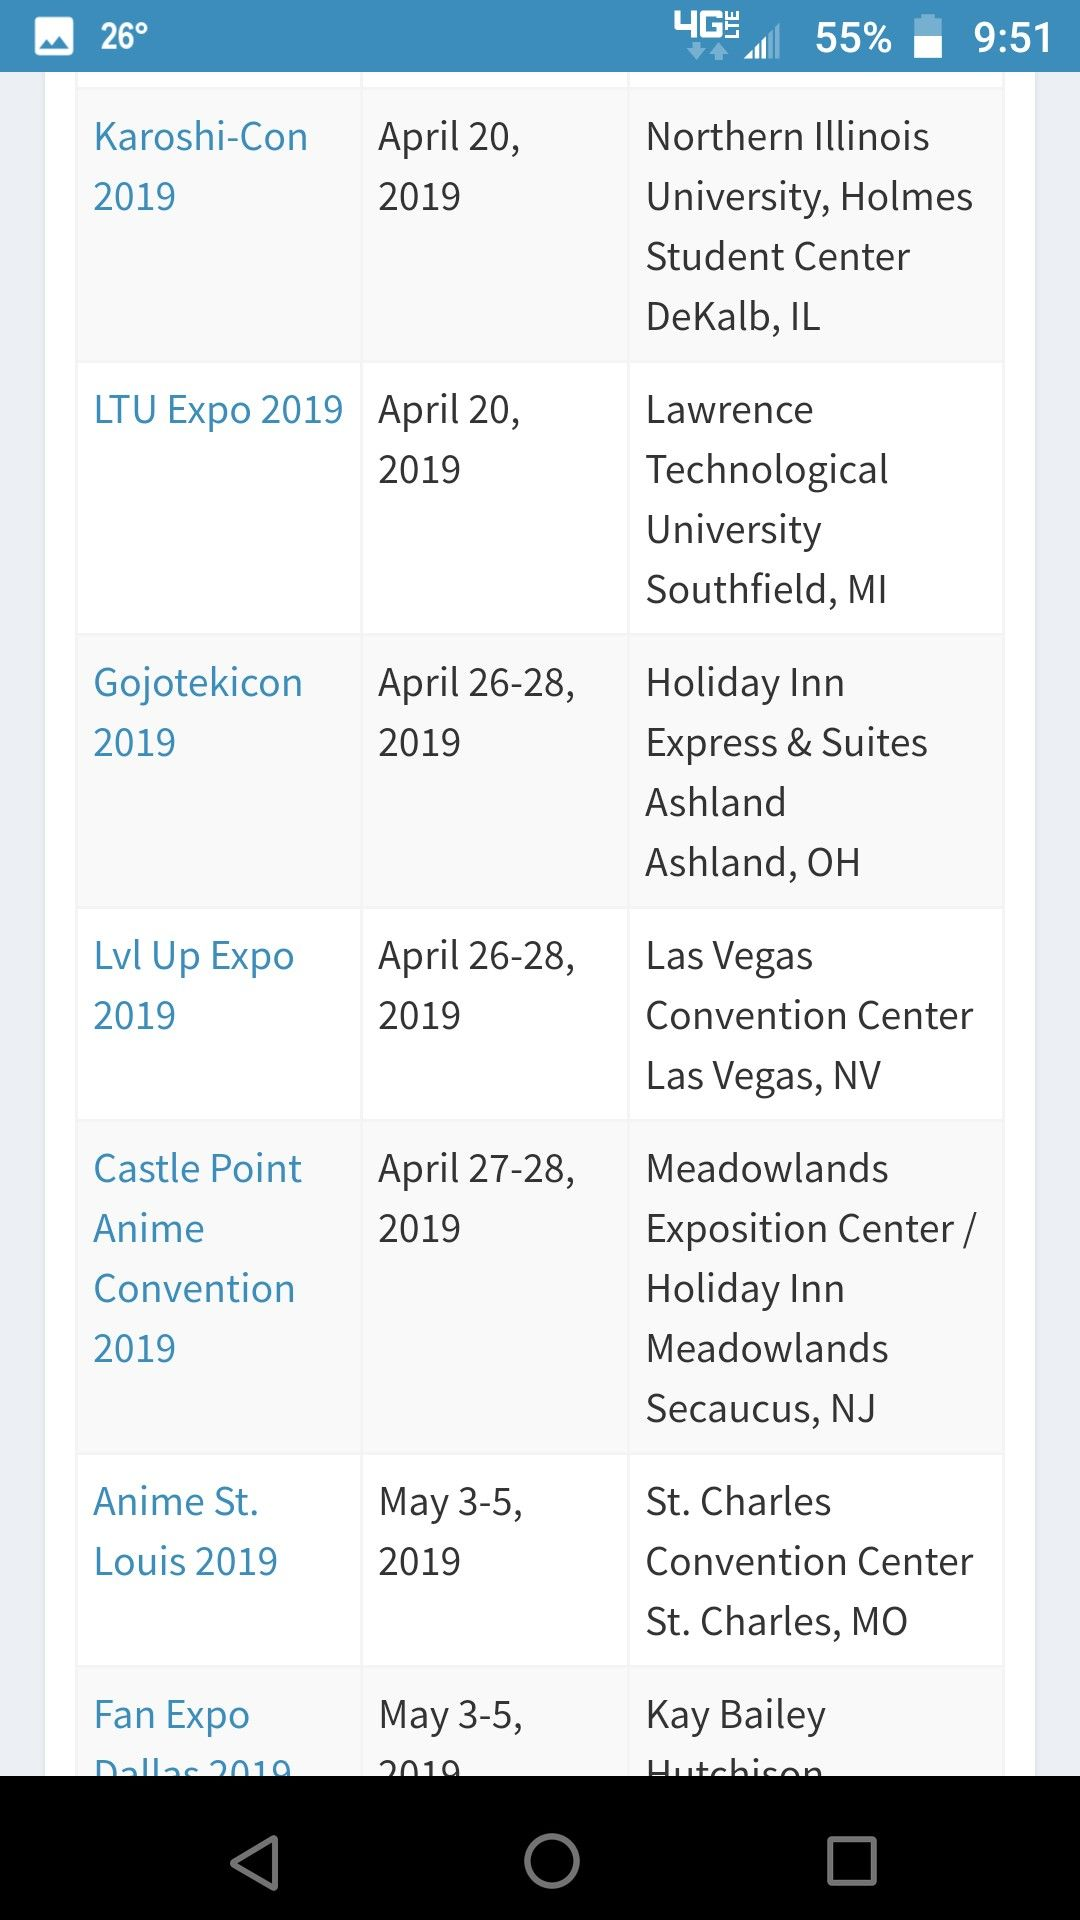 Pin By Tim Strycker On 2019 Conventions Las Vegas Illinois